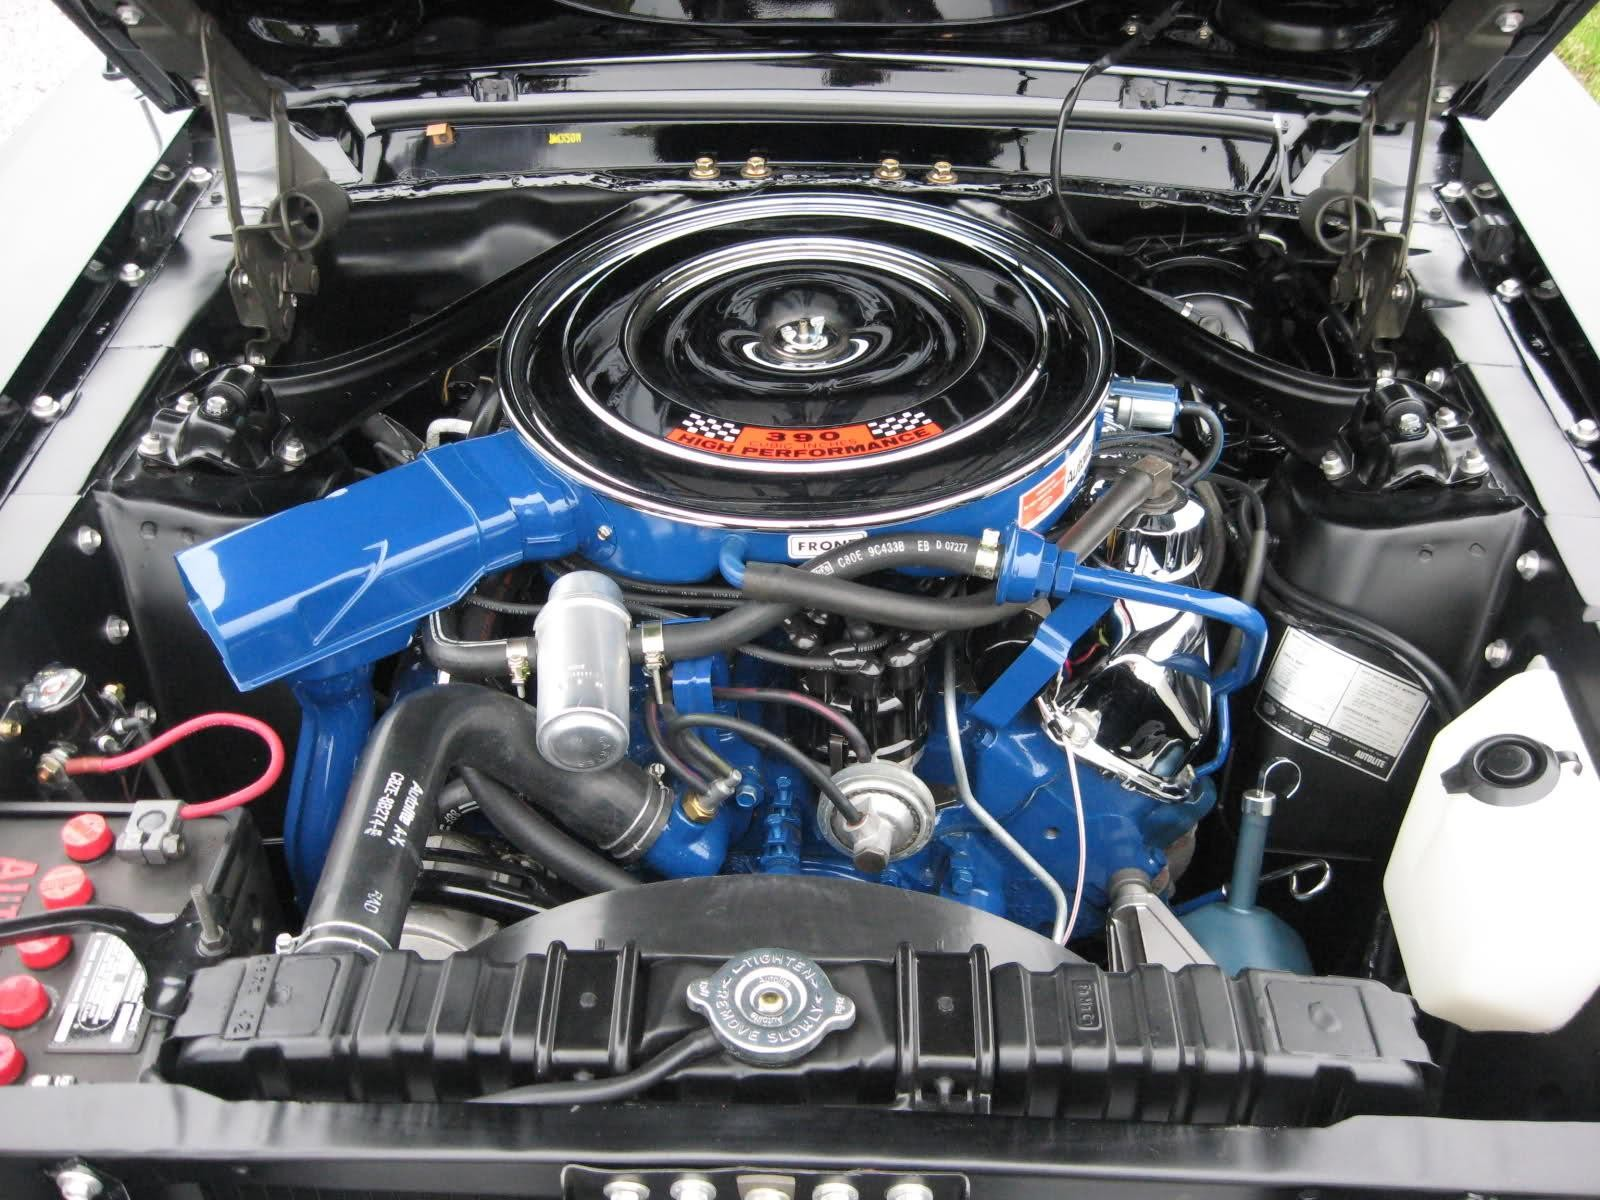 1968 Mustang Engine Information & Specs - 390 Cubic Inch V-8